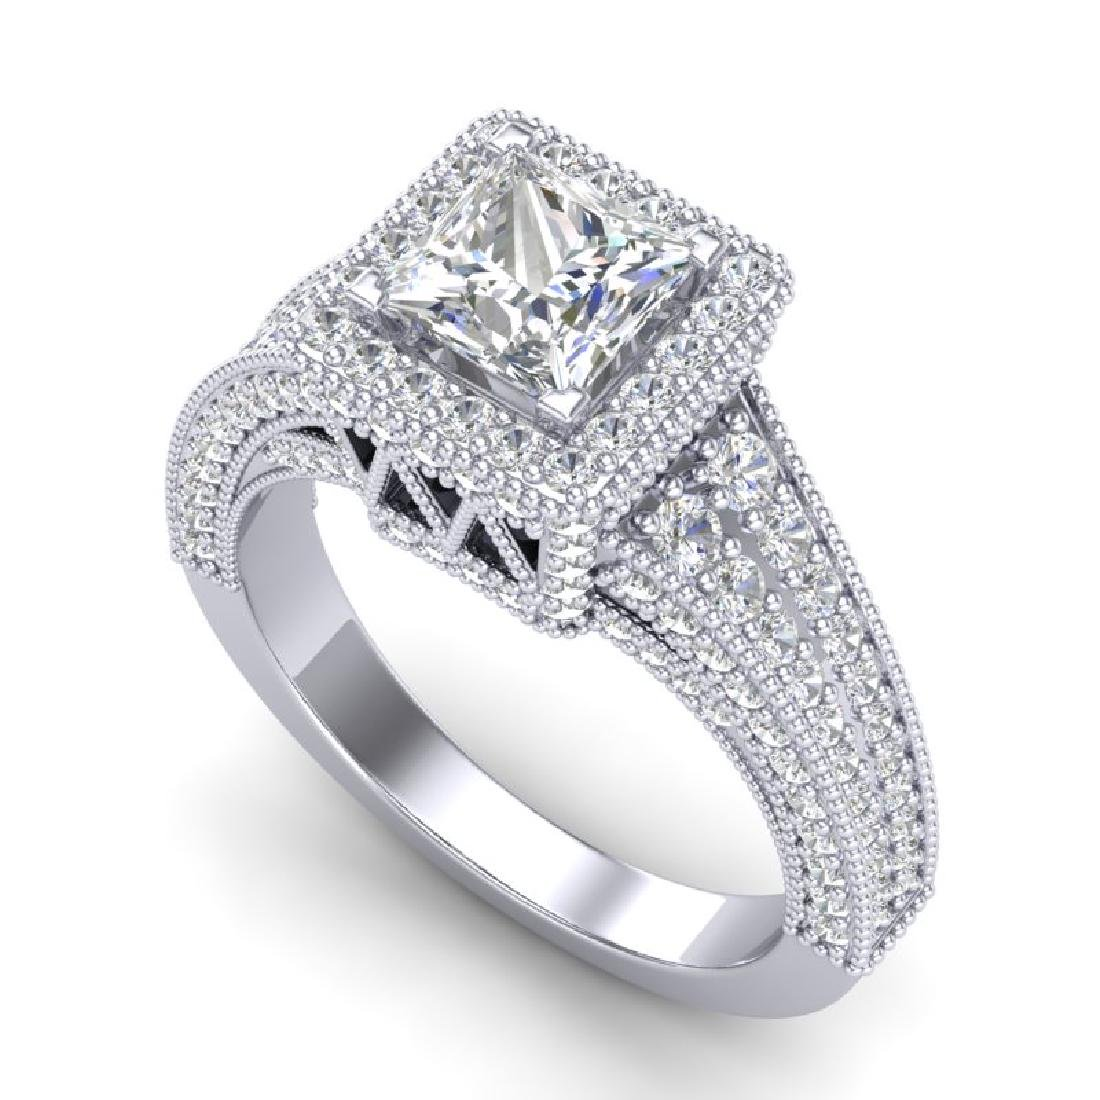 3.5 CTW Princess VS/SI Diamond Solitaire Micro Pave